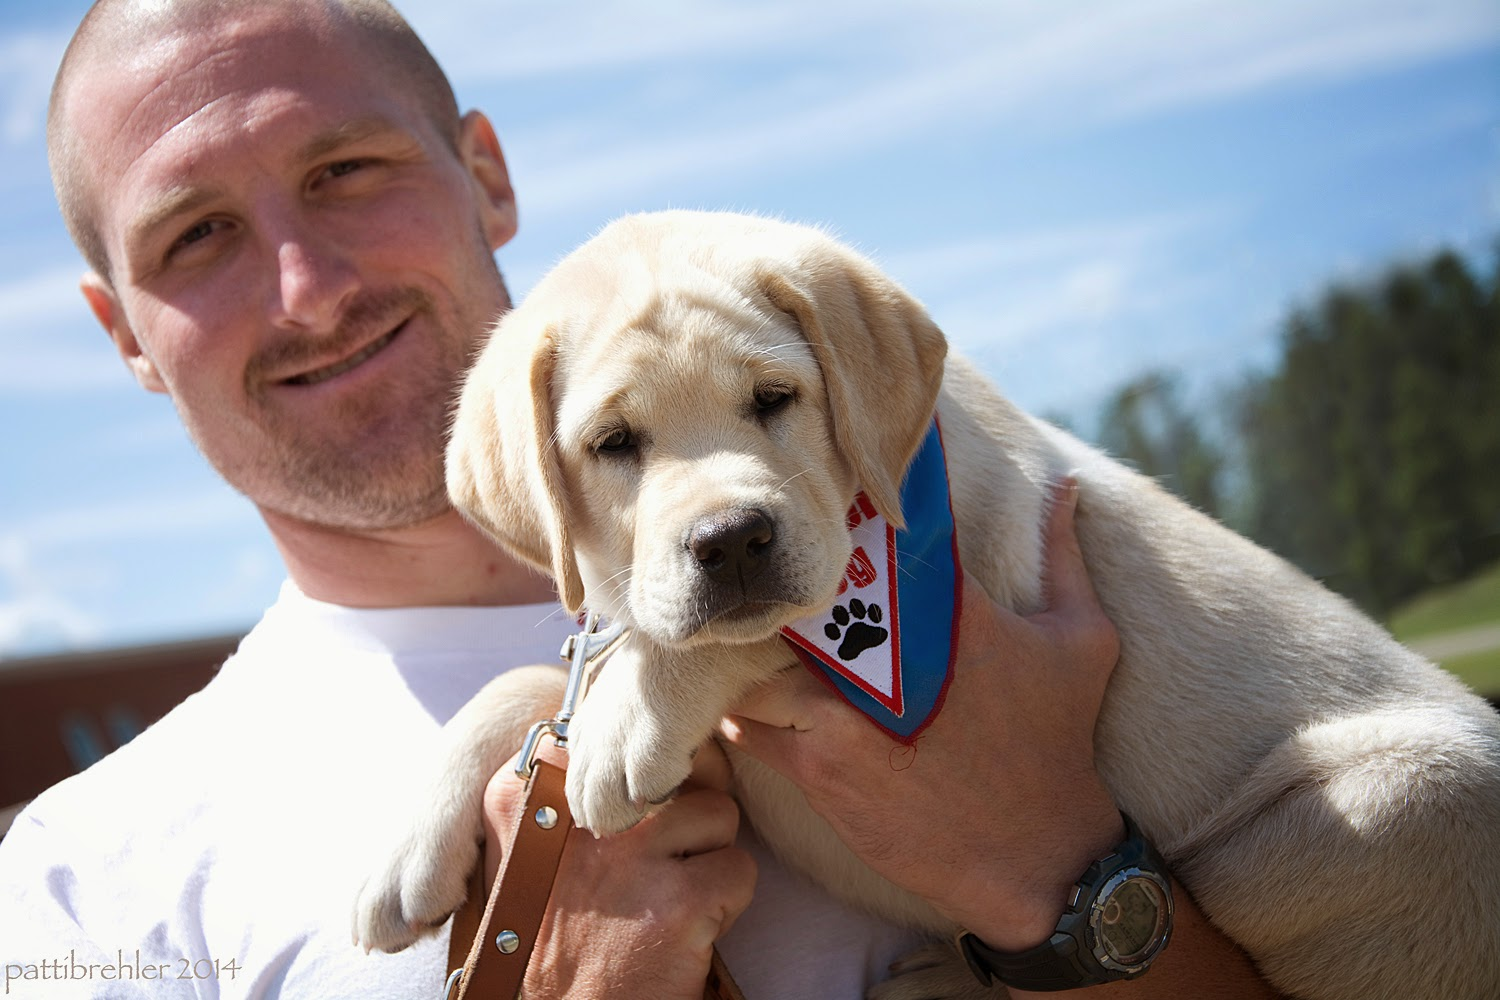 A bald man wearing a white t-shirt is smiling at the camera, he is holding a small yellow lab puppy in his left arm. The puppy is looking at the camera and is wearing a blue Future Leader Dog bandana.